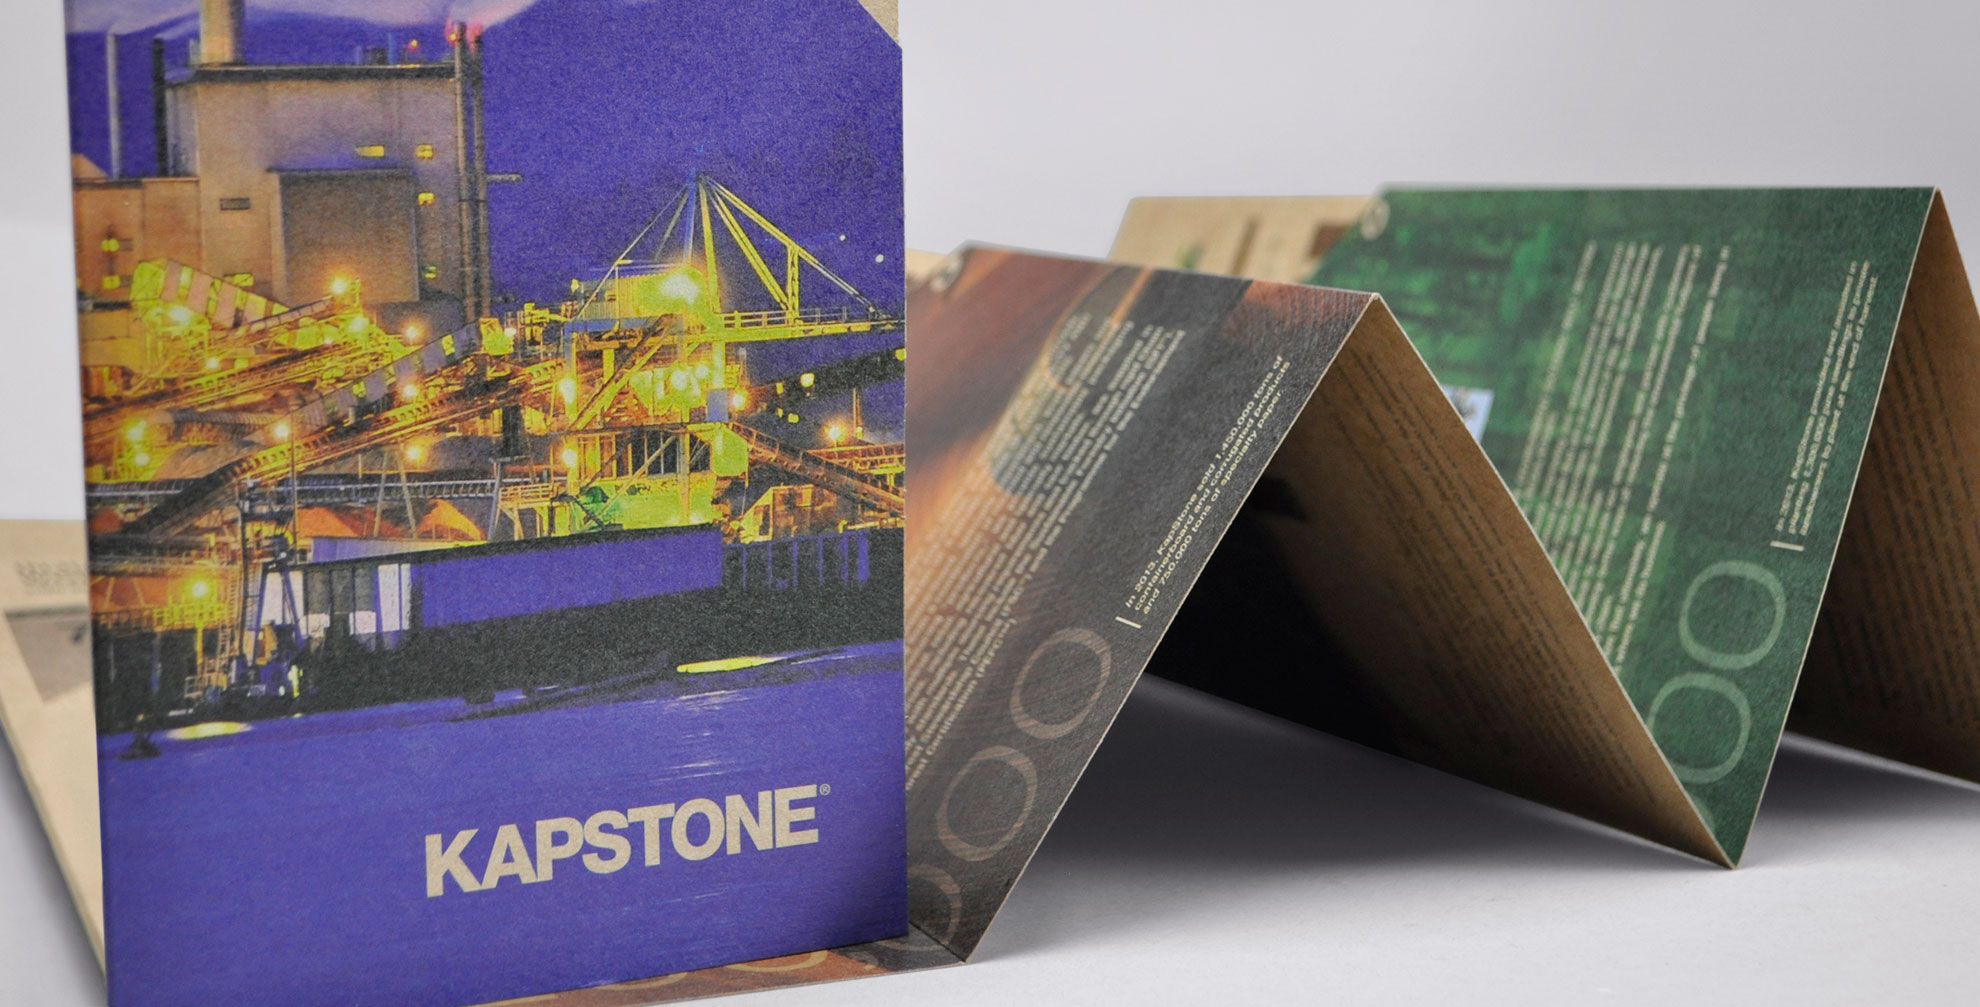 kapstone paper and packaging See what women say about kapstone paper and packaging's benefits.